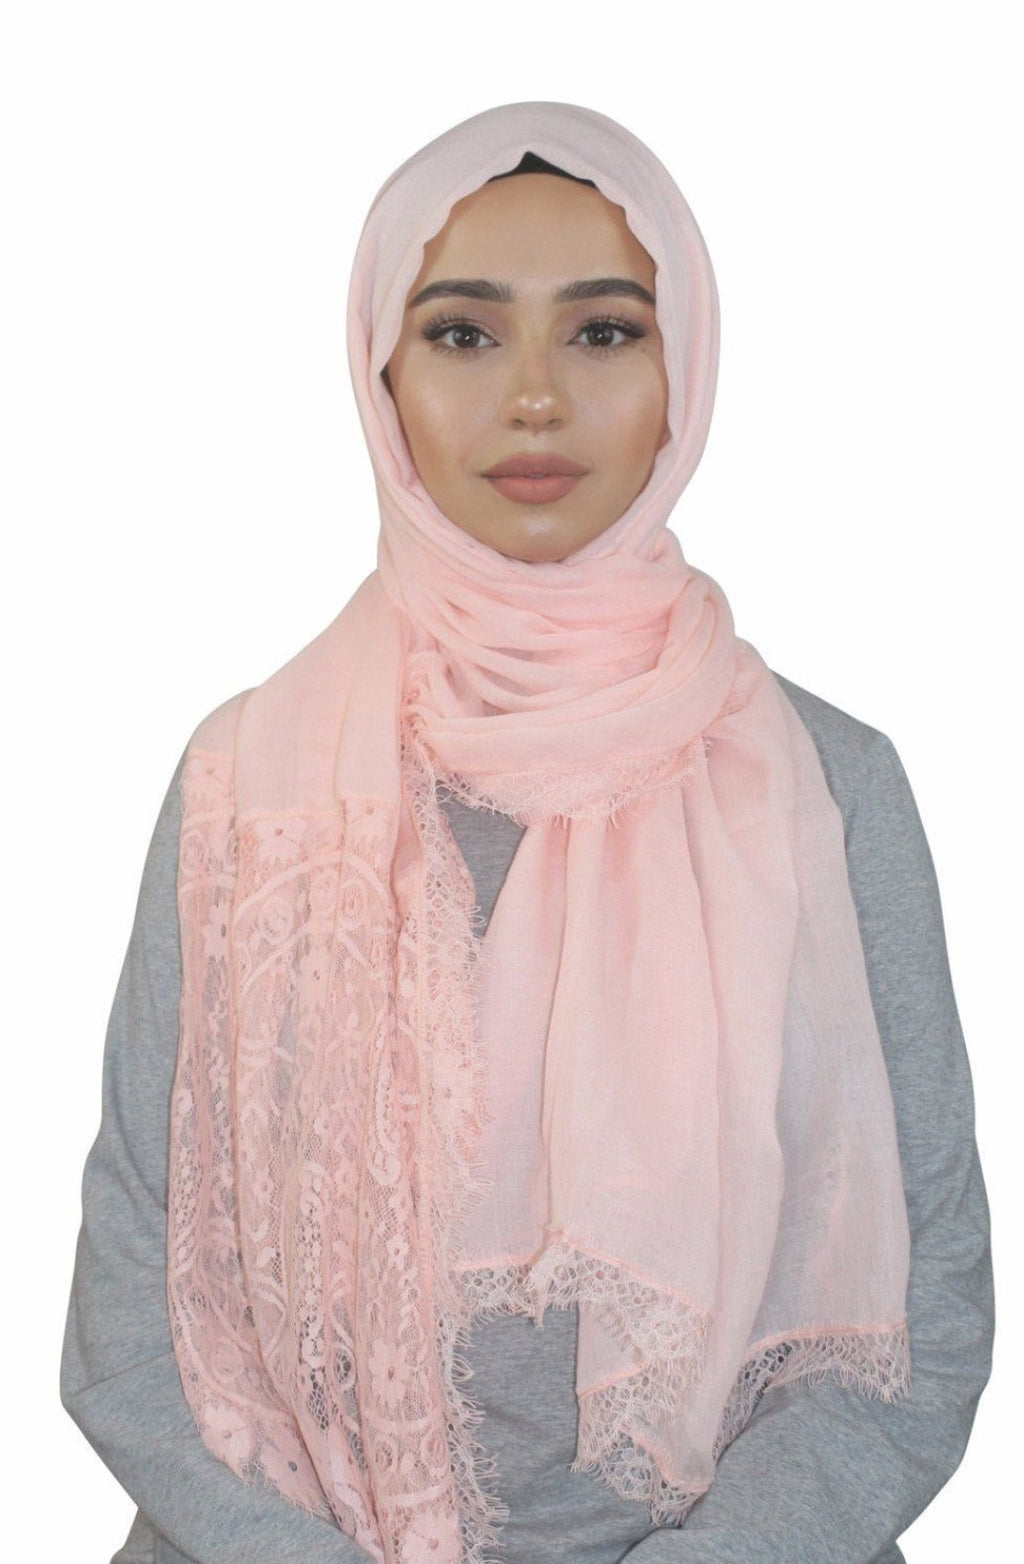 Salmon Lace Trim  Cotton Hijab - Abaya, Hijabs, Jilbabs, on sale now at UrbanModesty.com